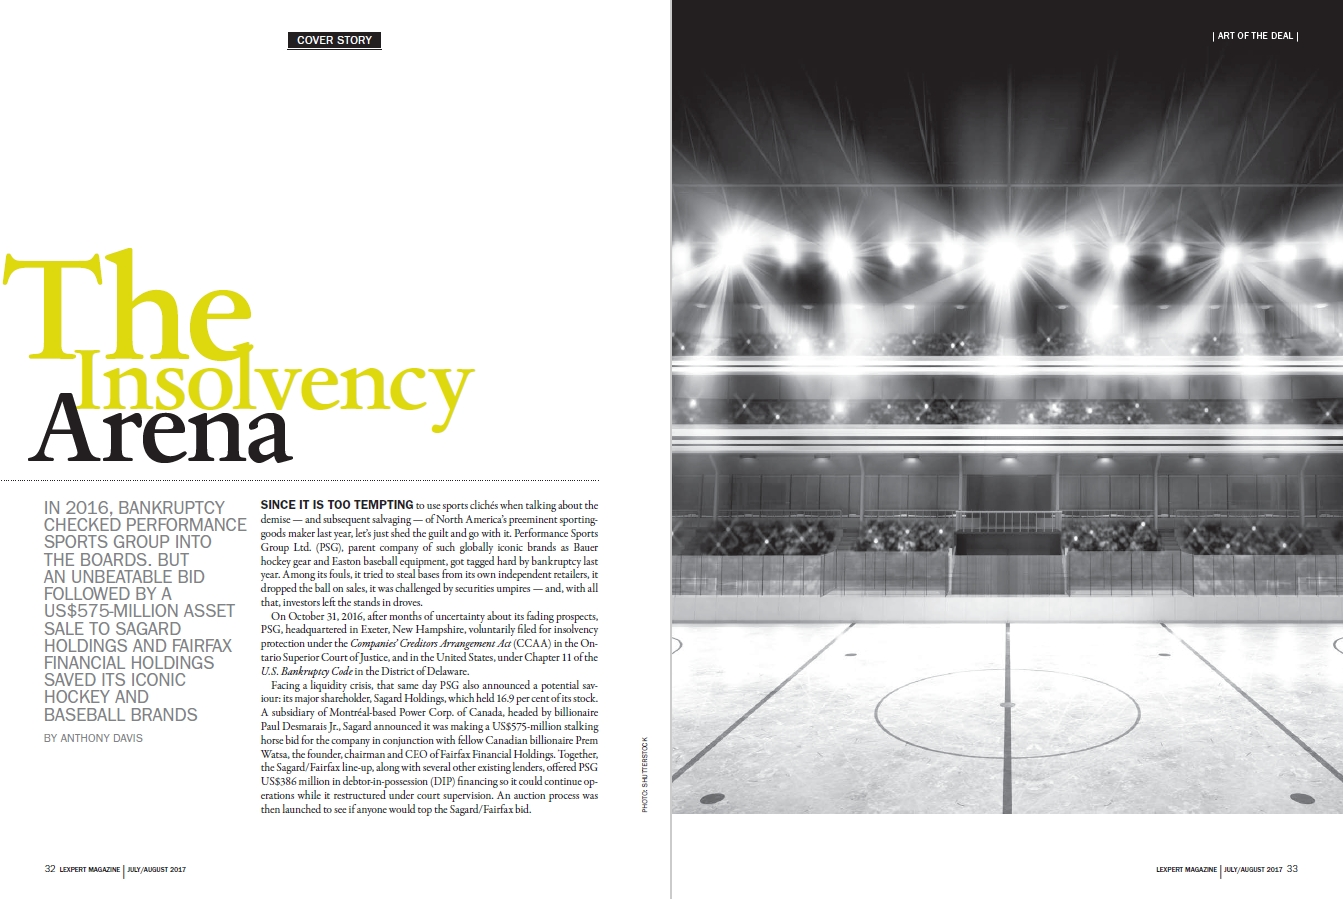 The Insolvency Arena